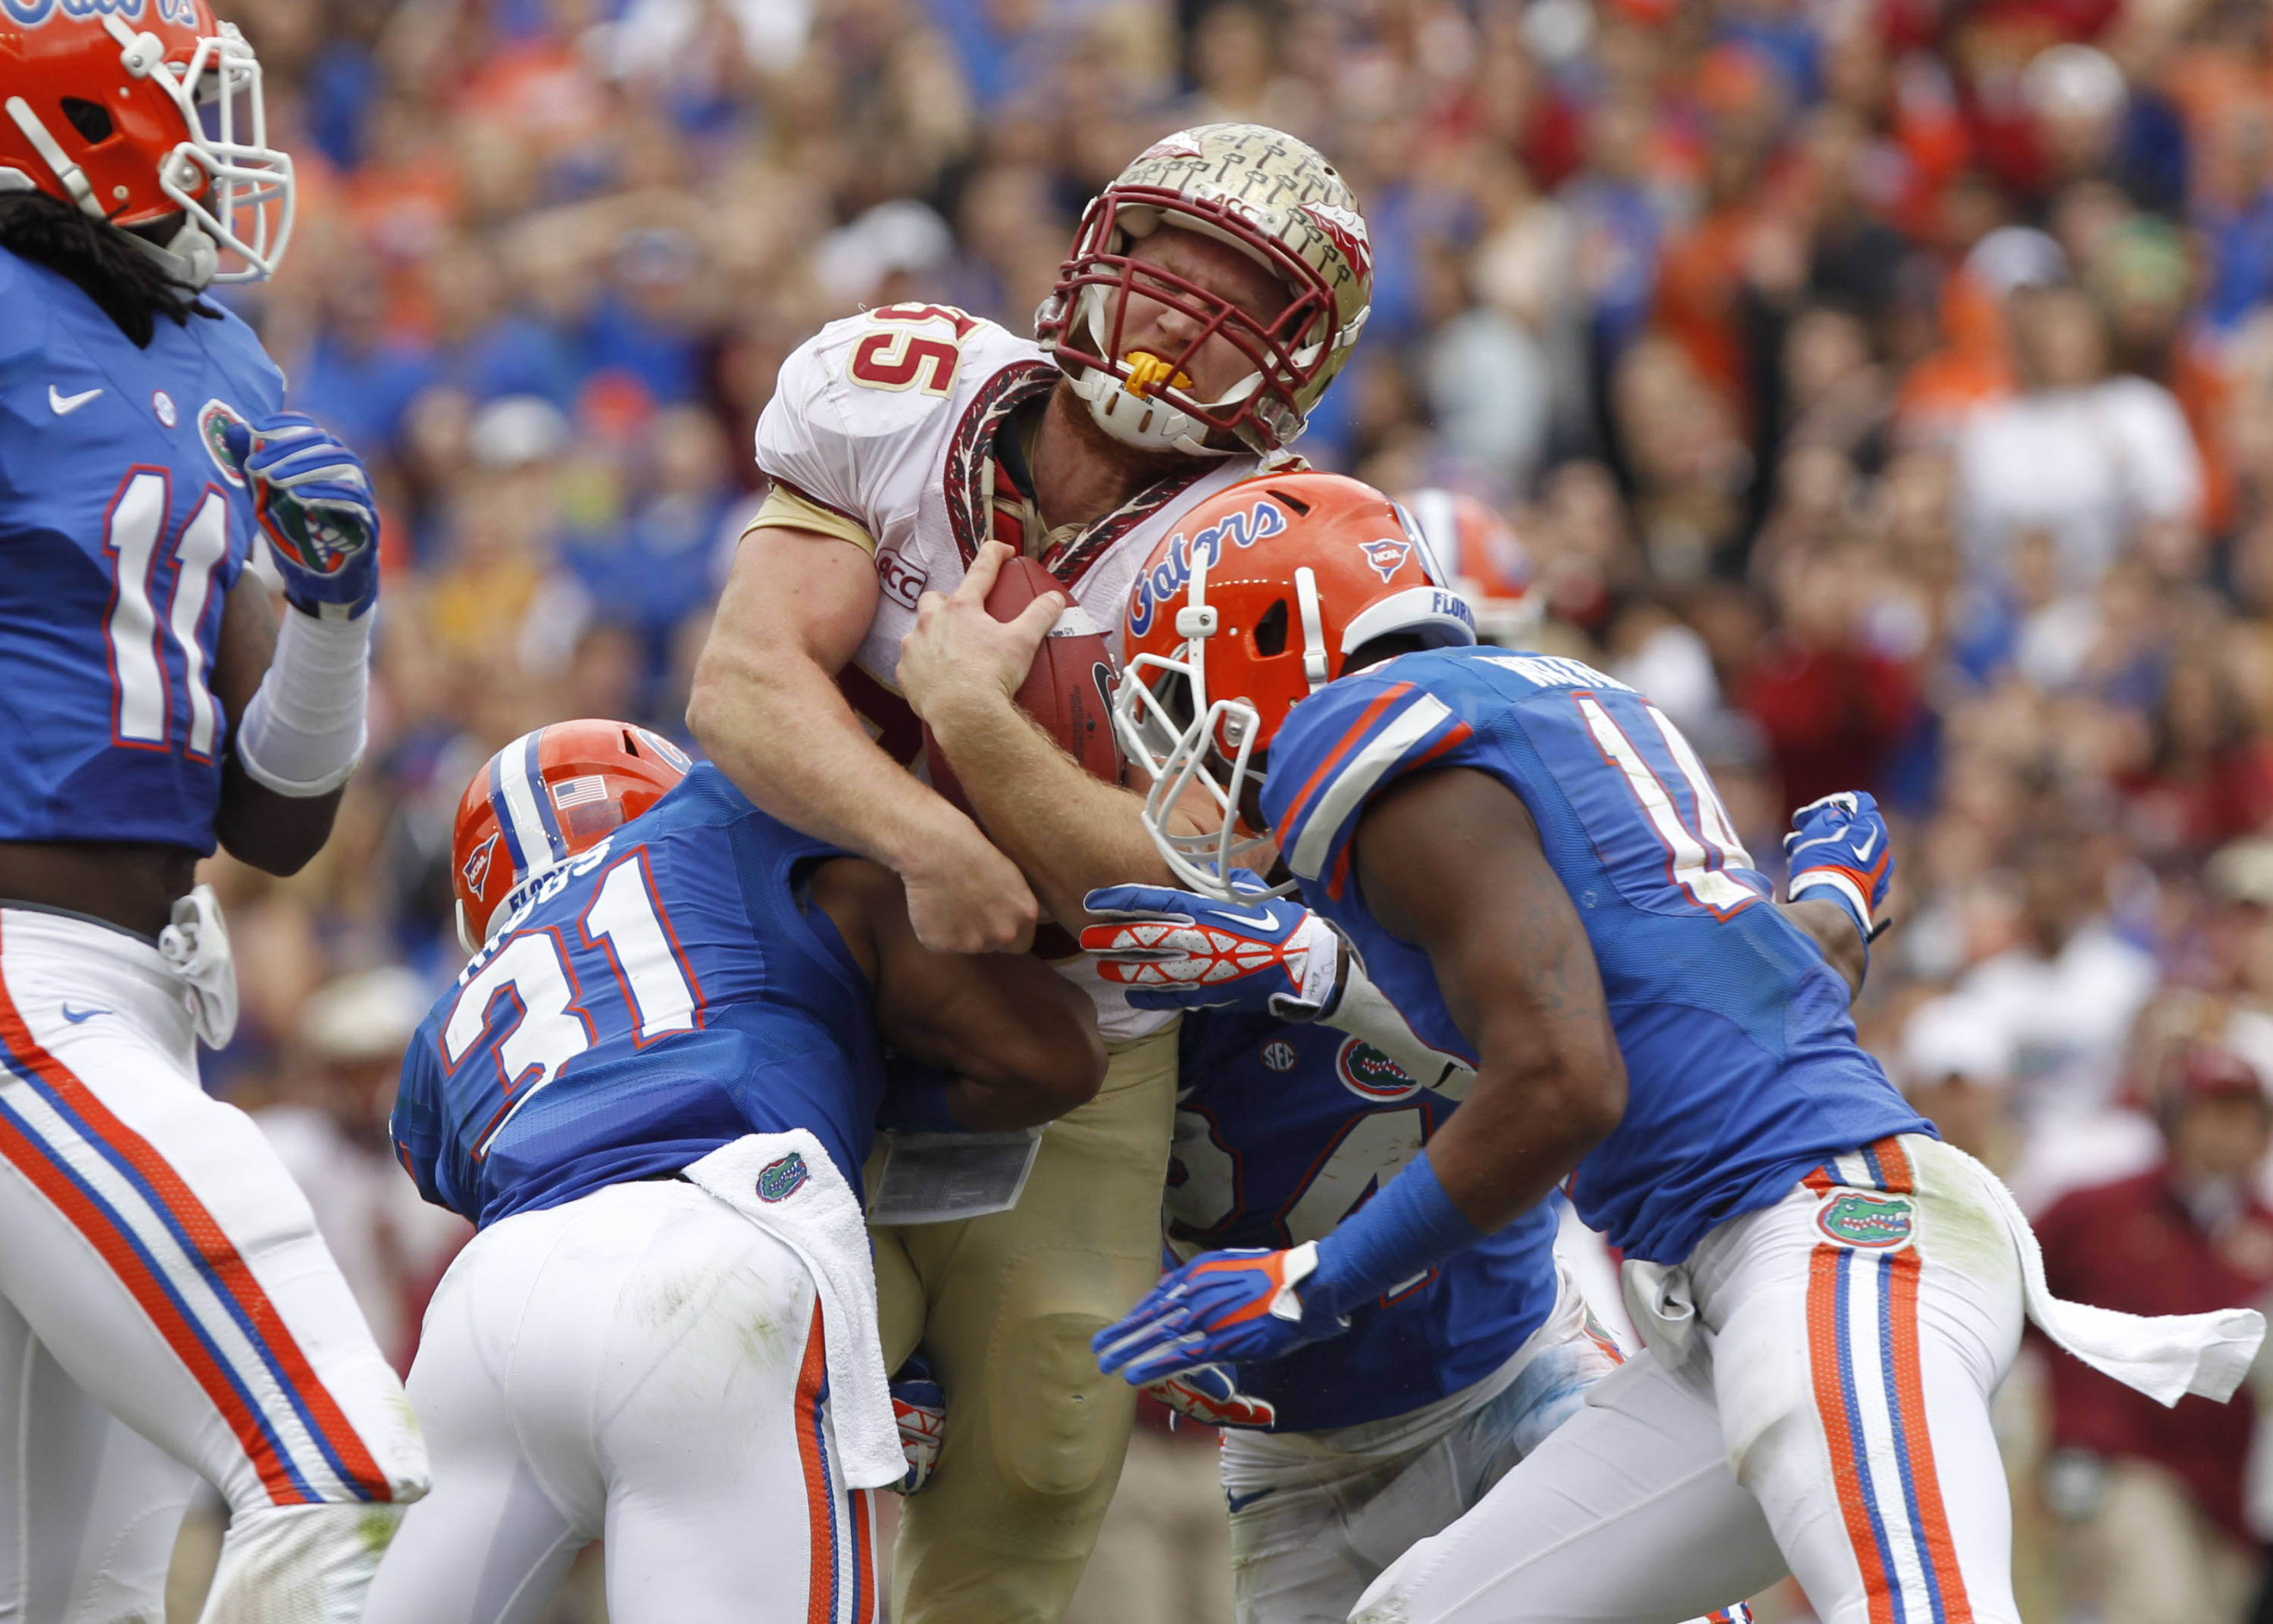 Nick O'Leary (35) runs with the ball as Florida Gators defensive back Cody Riggs (31) defends. Mandatory Credit: Kim Klement-USA TODAY Sports